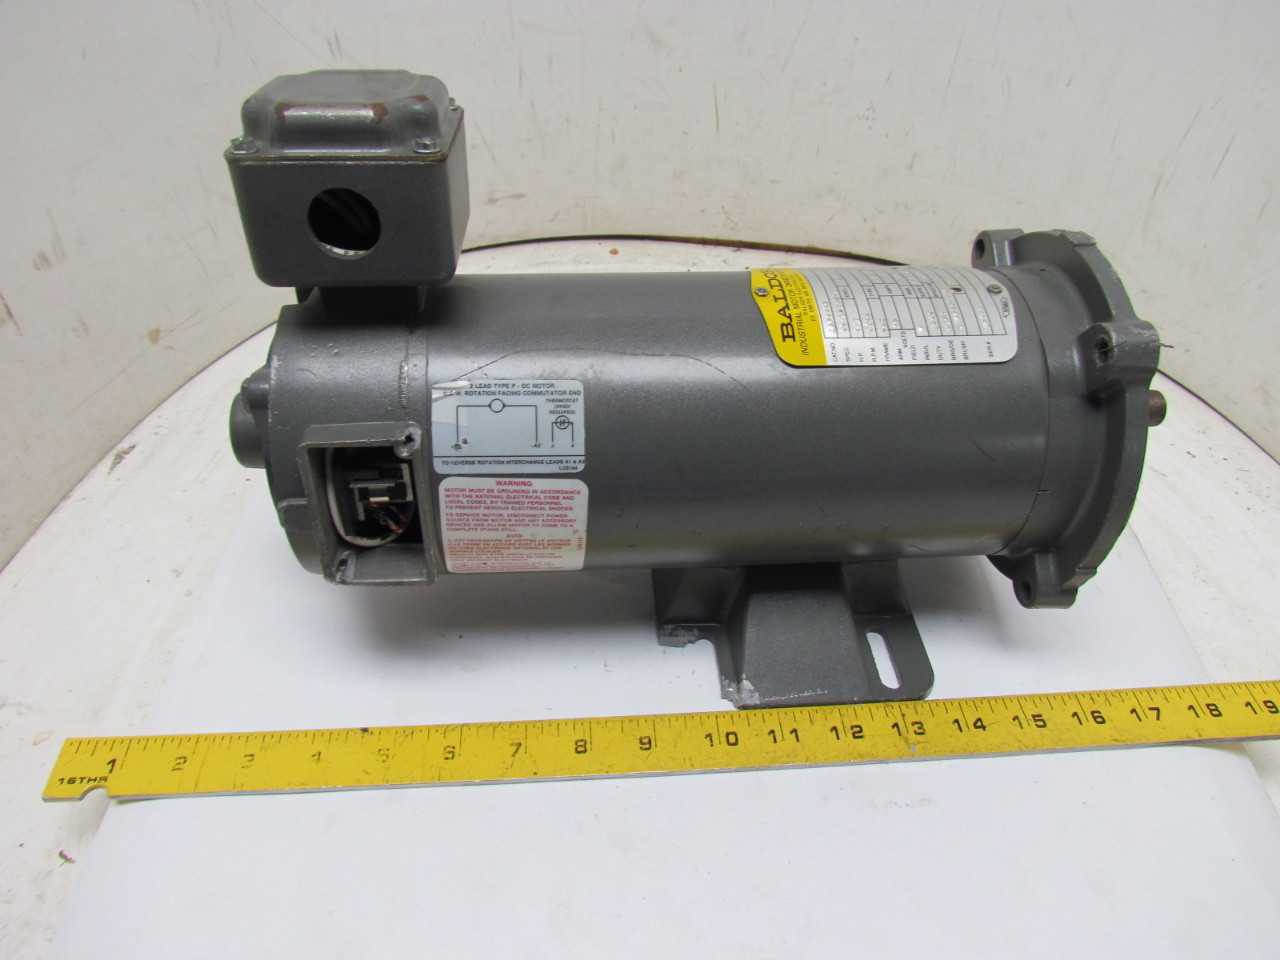 Baldor cdp3330 33 2024z122 90v dc motor 1 2hp 1750 rpm pm336p parts or repair ebay Baldor motor repair